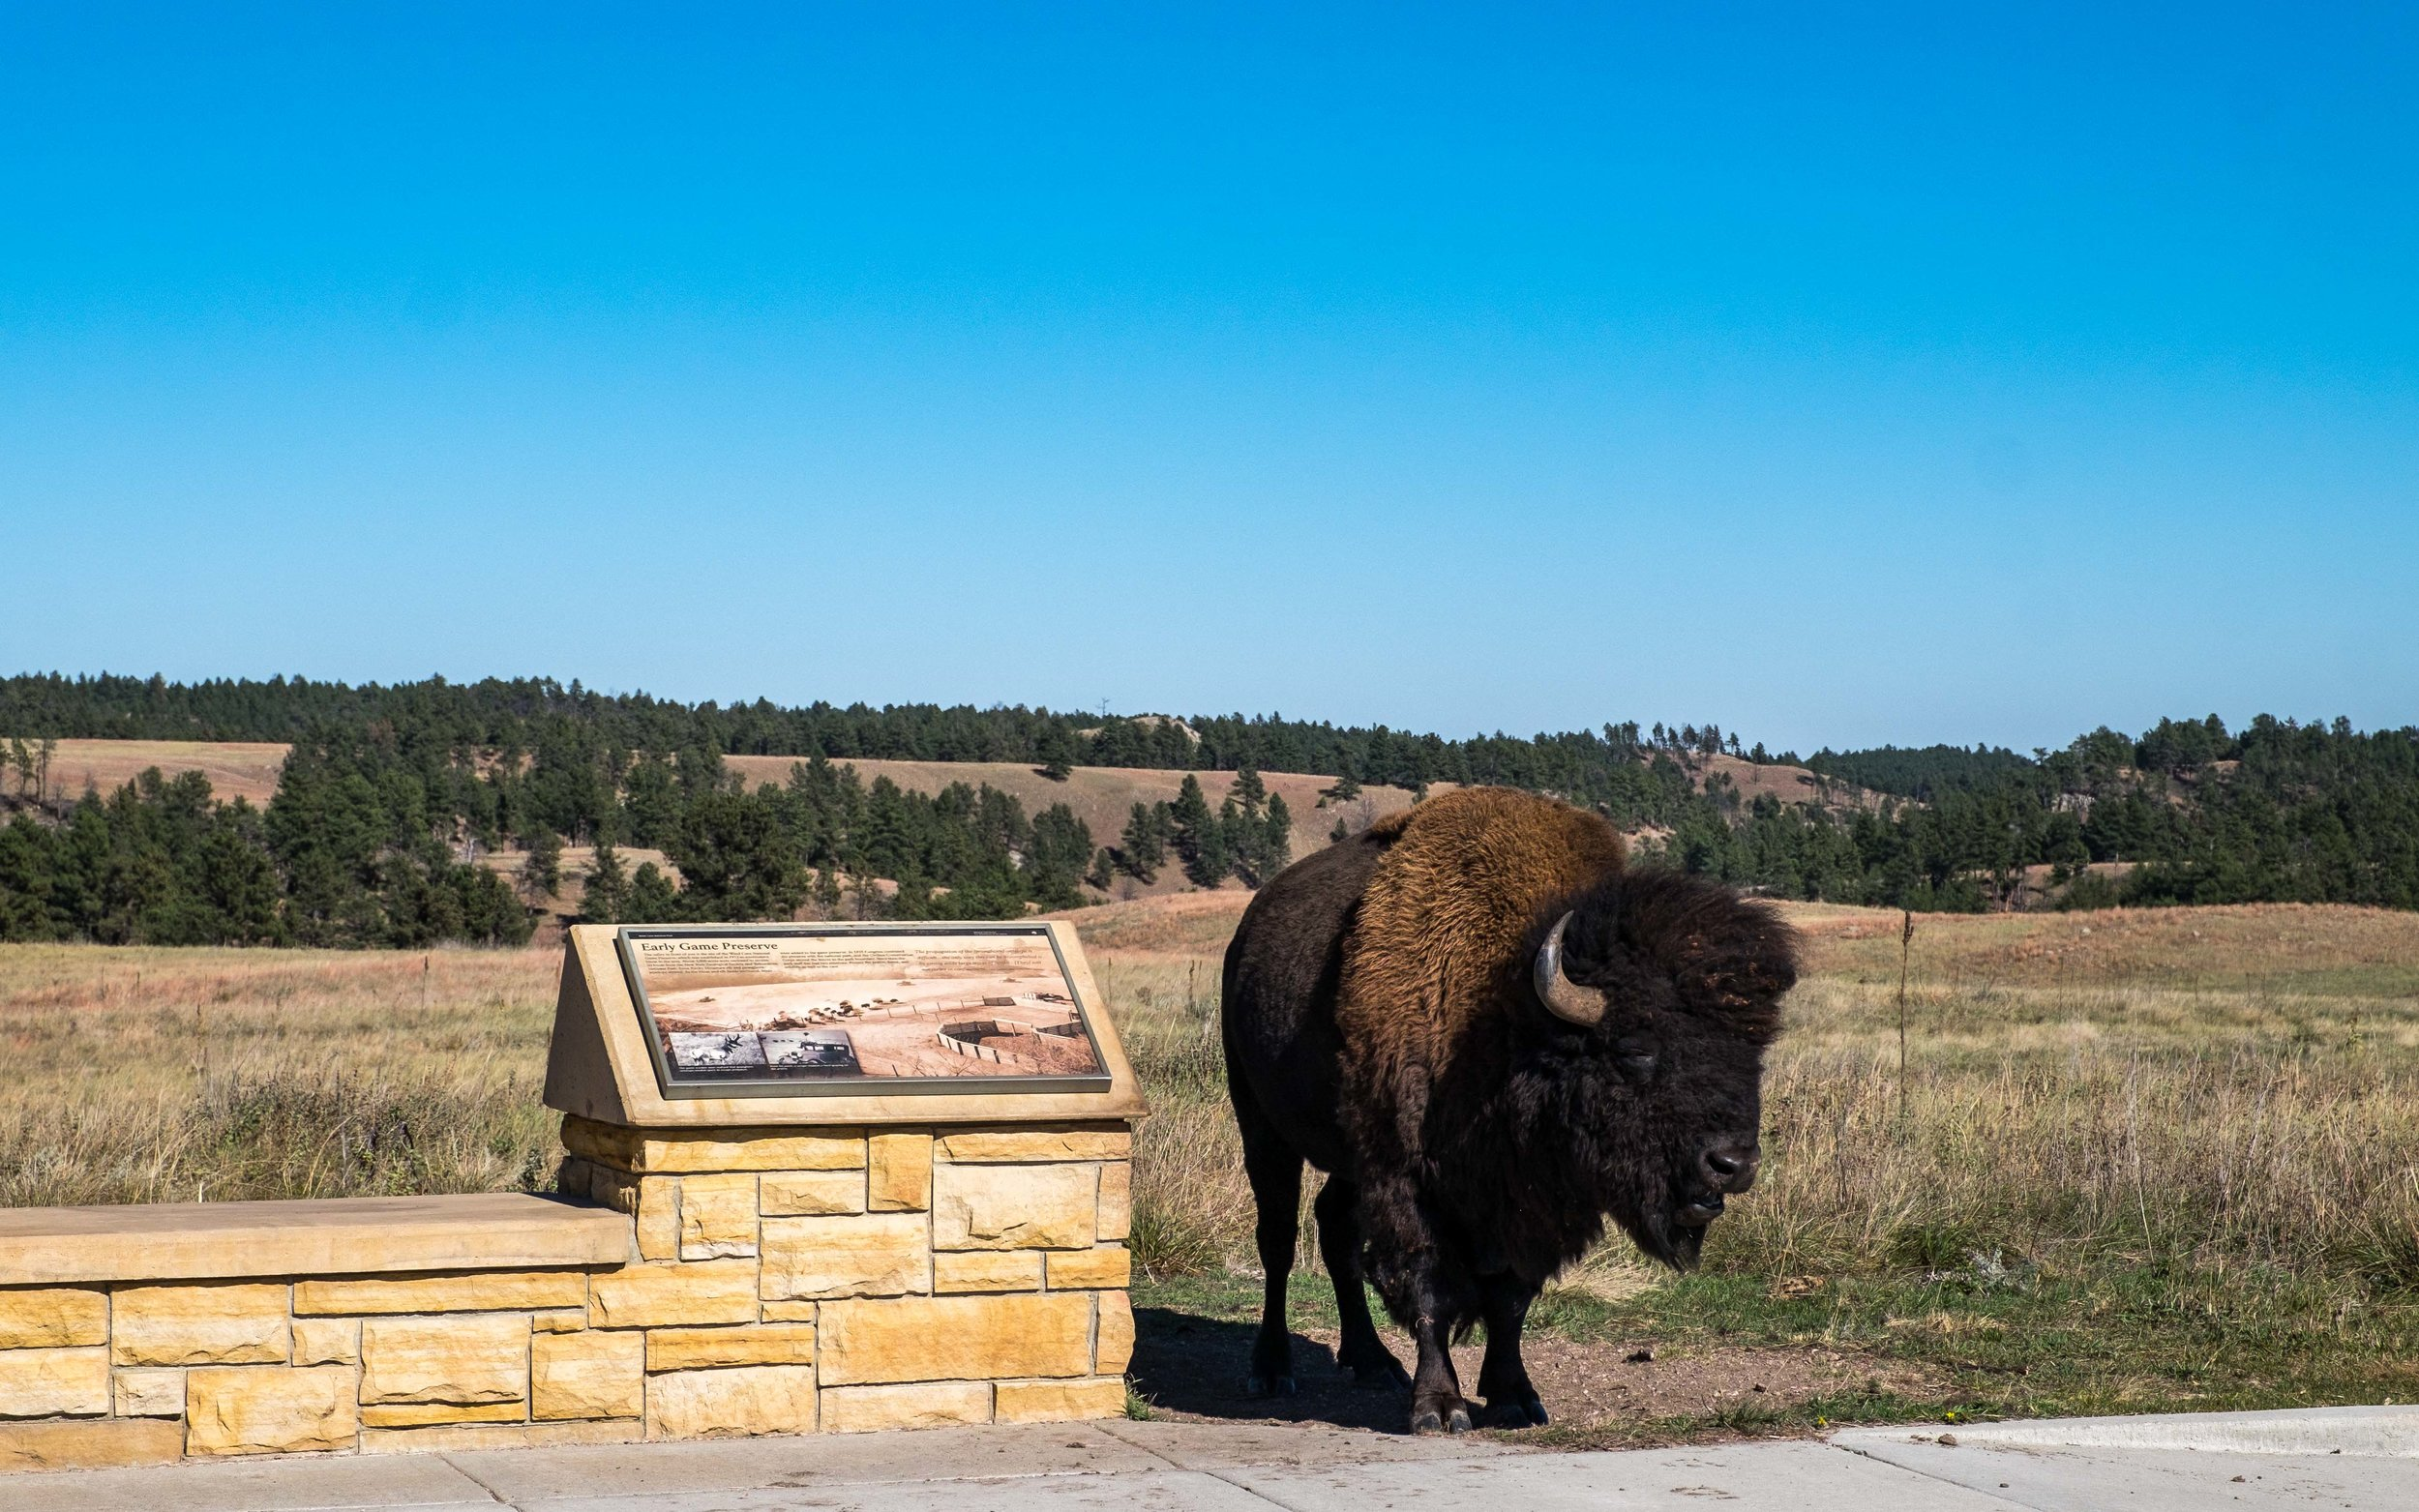 Welcoming committee at Wind Cave in South Dakota.